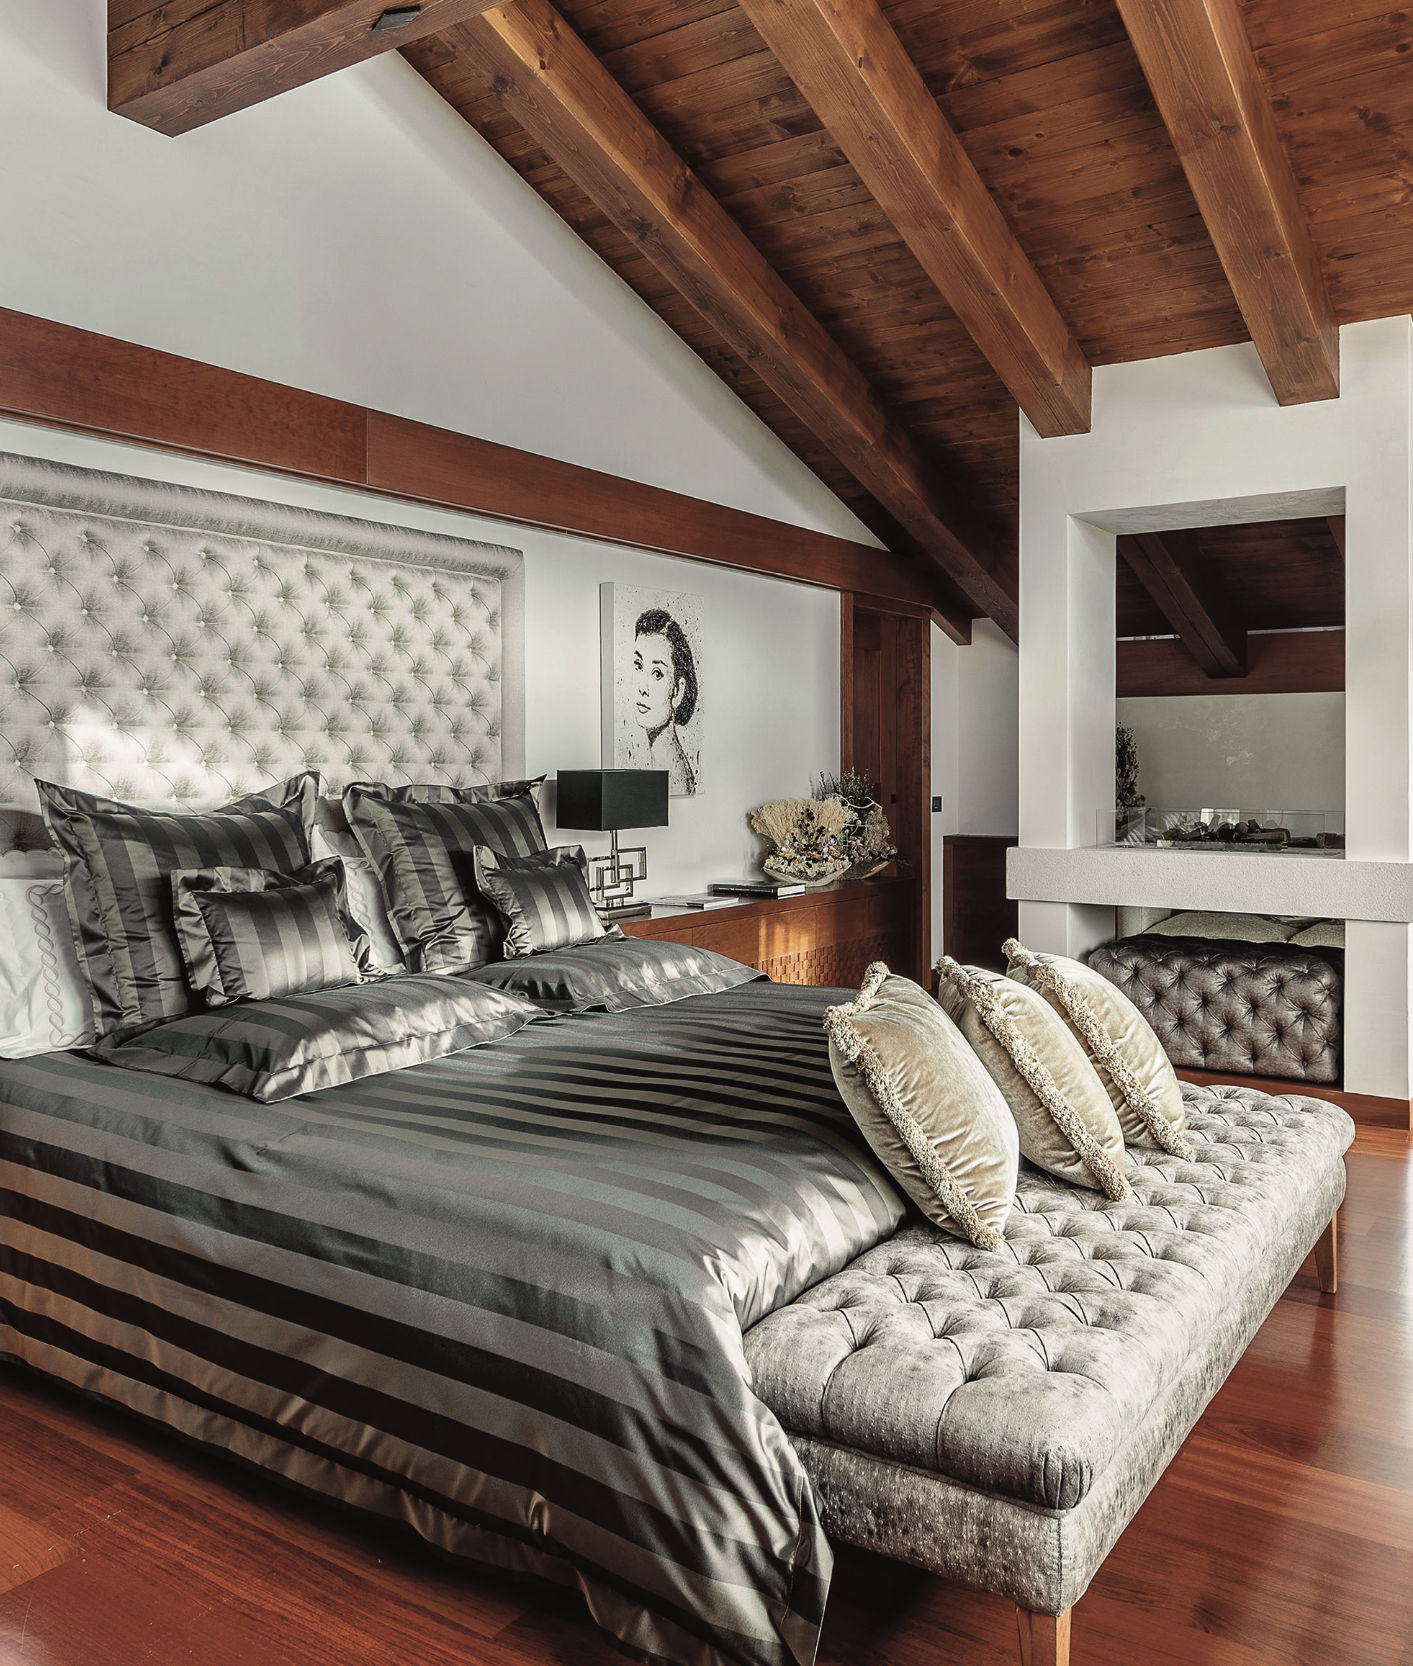 Luxury Chalets in Cortina d'Ampezzo